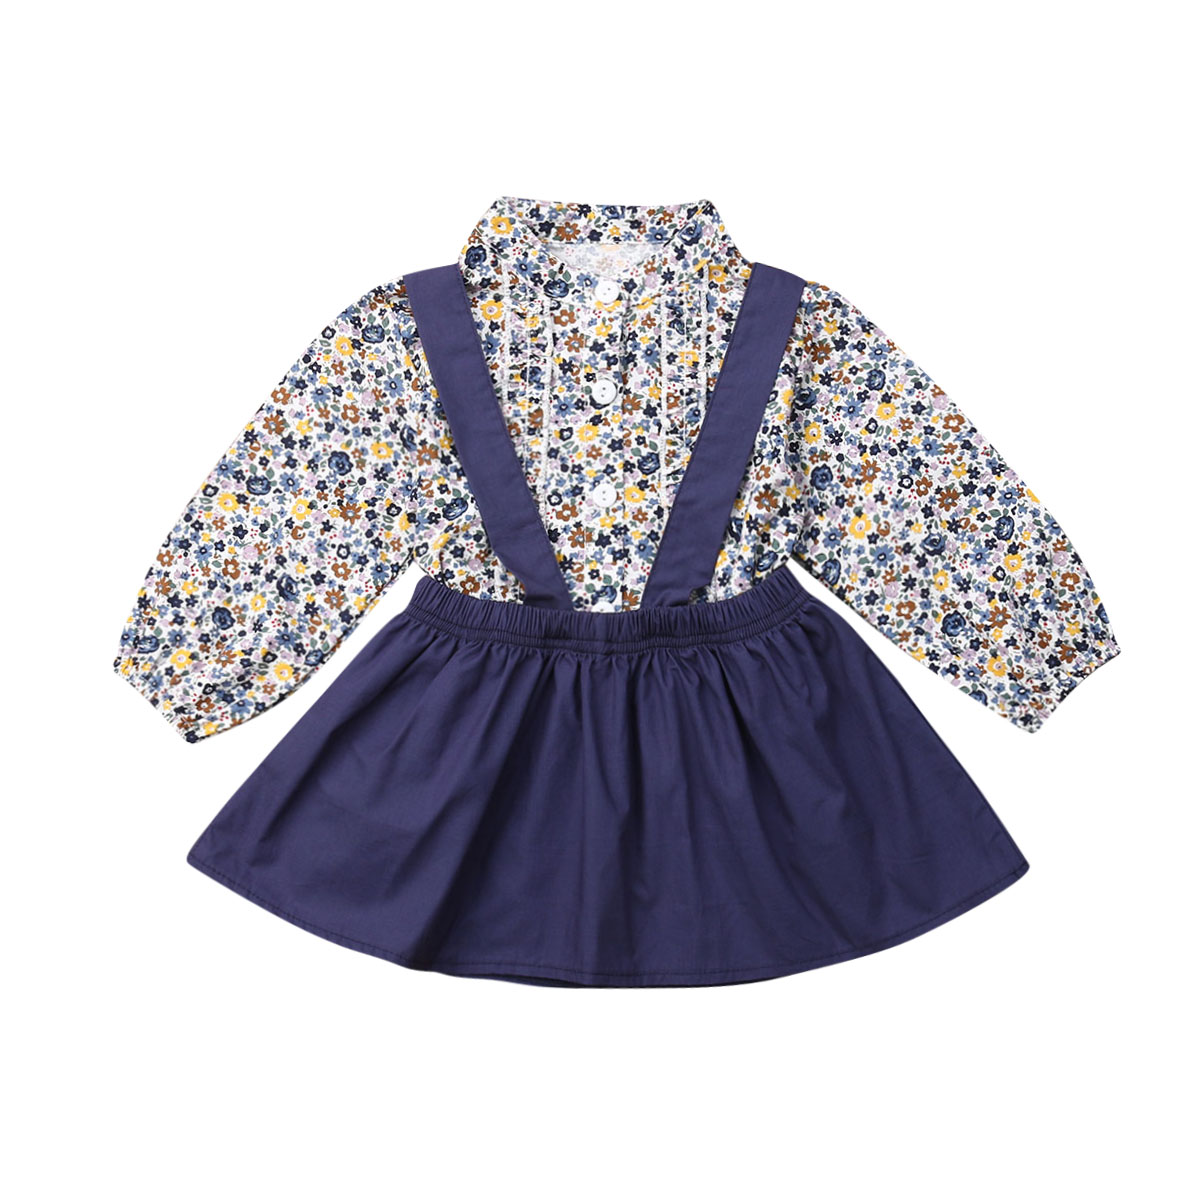 Kids Baby Girl <font><b>Skirt</b></font> Set Clothes Toddler Long Sleeve Floral Long Sleeve Shirt Tops+<font><b>Bib</b></font> <font><b>Skirts</b></font> Children Cute 2Pcs Outfits 6M-4Y image